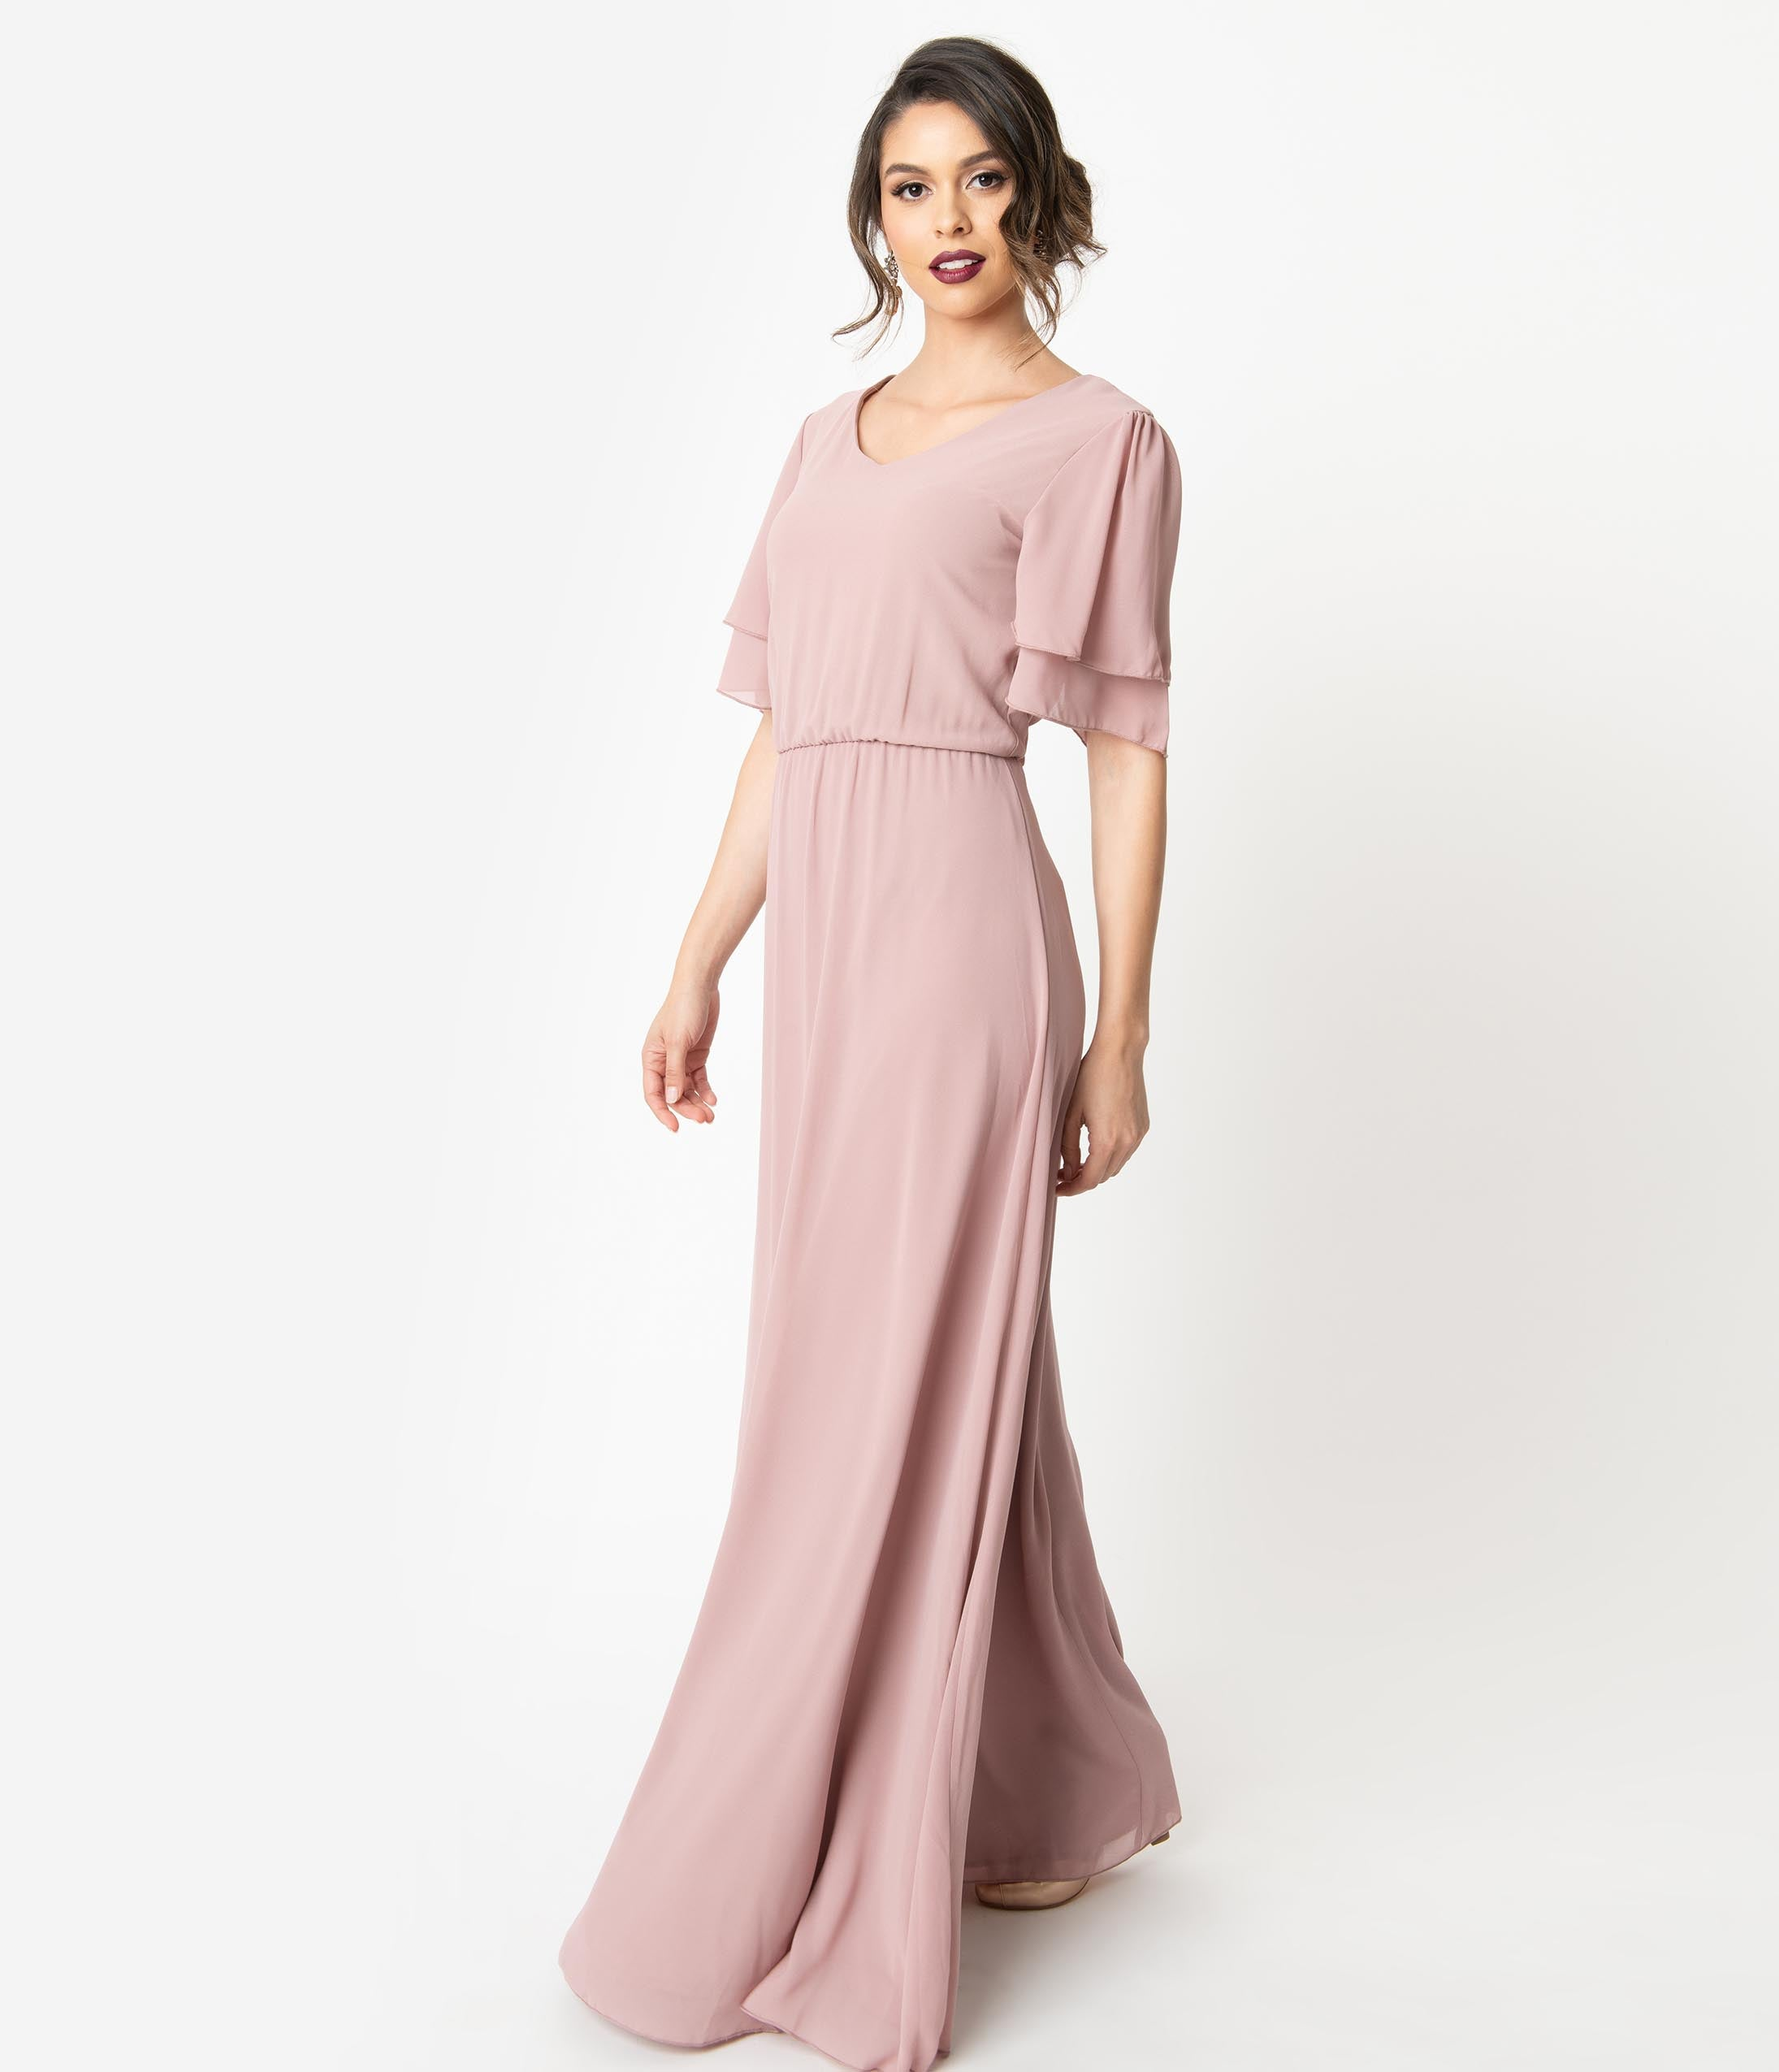 Vintage Evening Dresses and Formal Evening Gowns Vintage Style Lilac Purple Chiffon Butterfly Sleeve Maxi Dress $88.00 AT vintagedancer.com